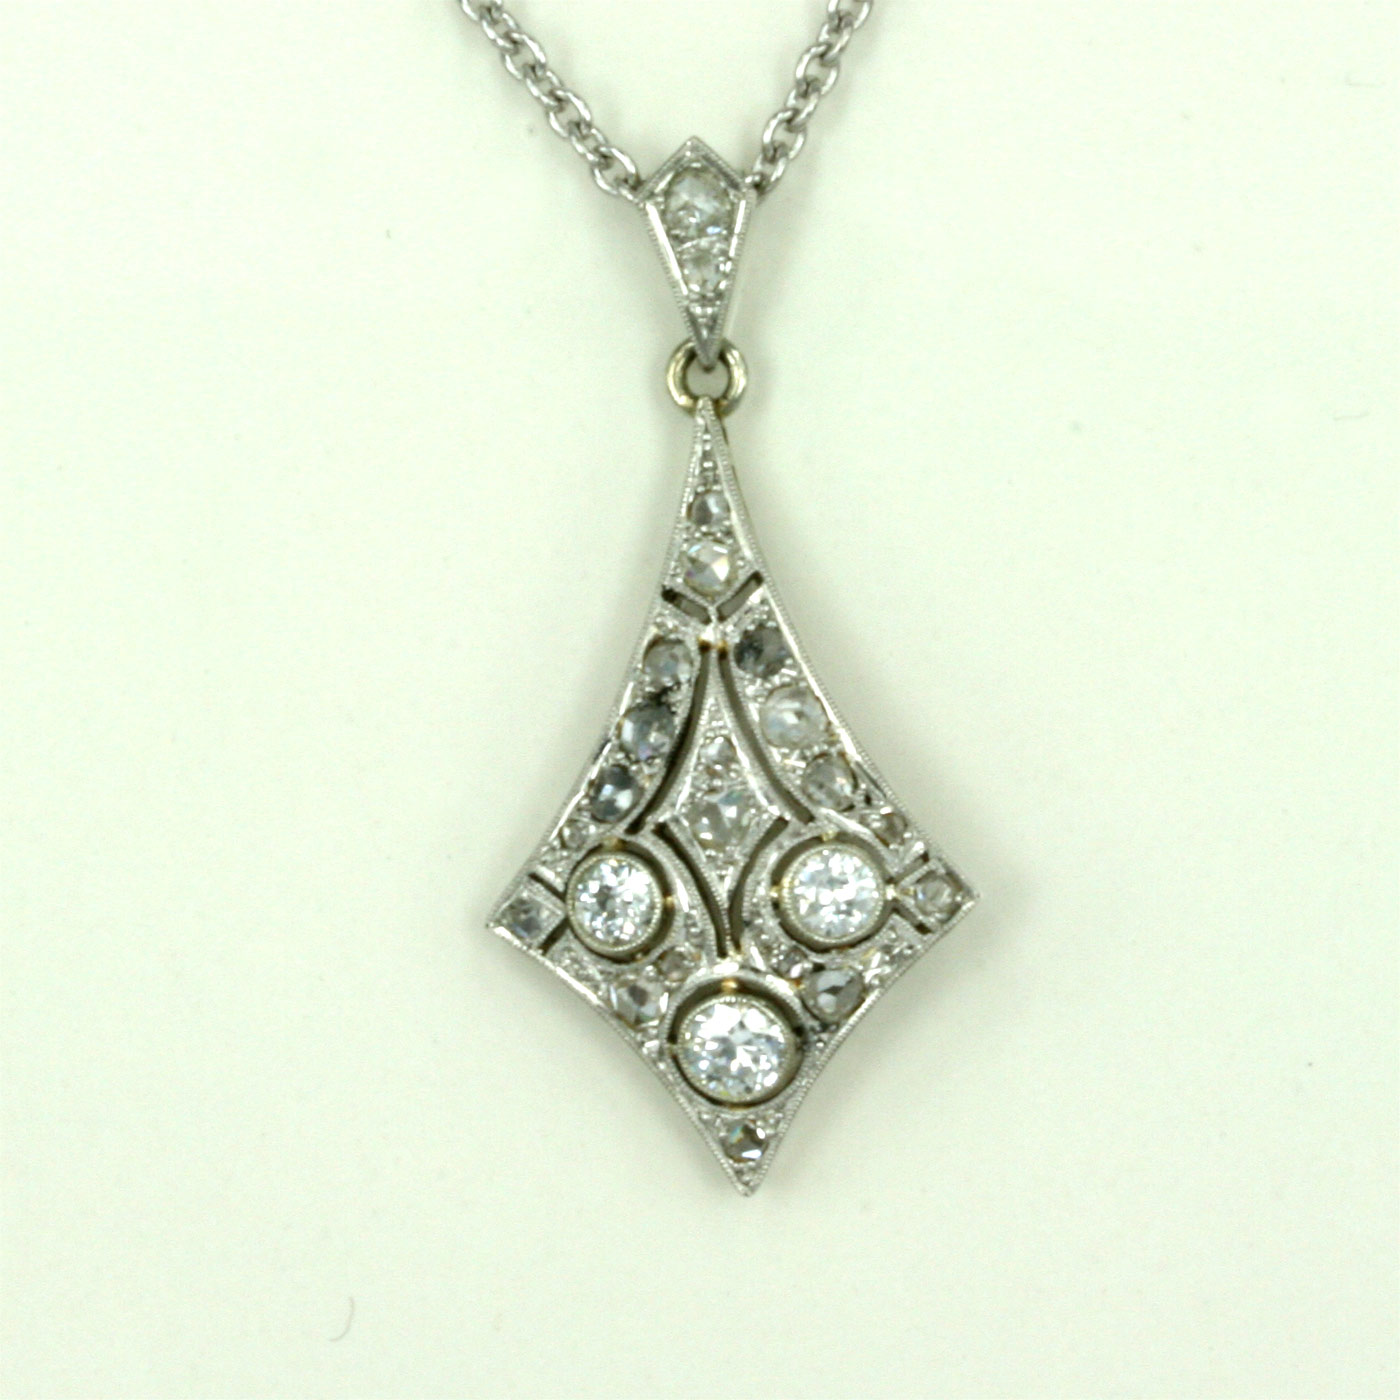 Buy art deco pendant with 24 diamonds sold items sold jewellery art deco pendant with 24 diamonds aloadofball Images